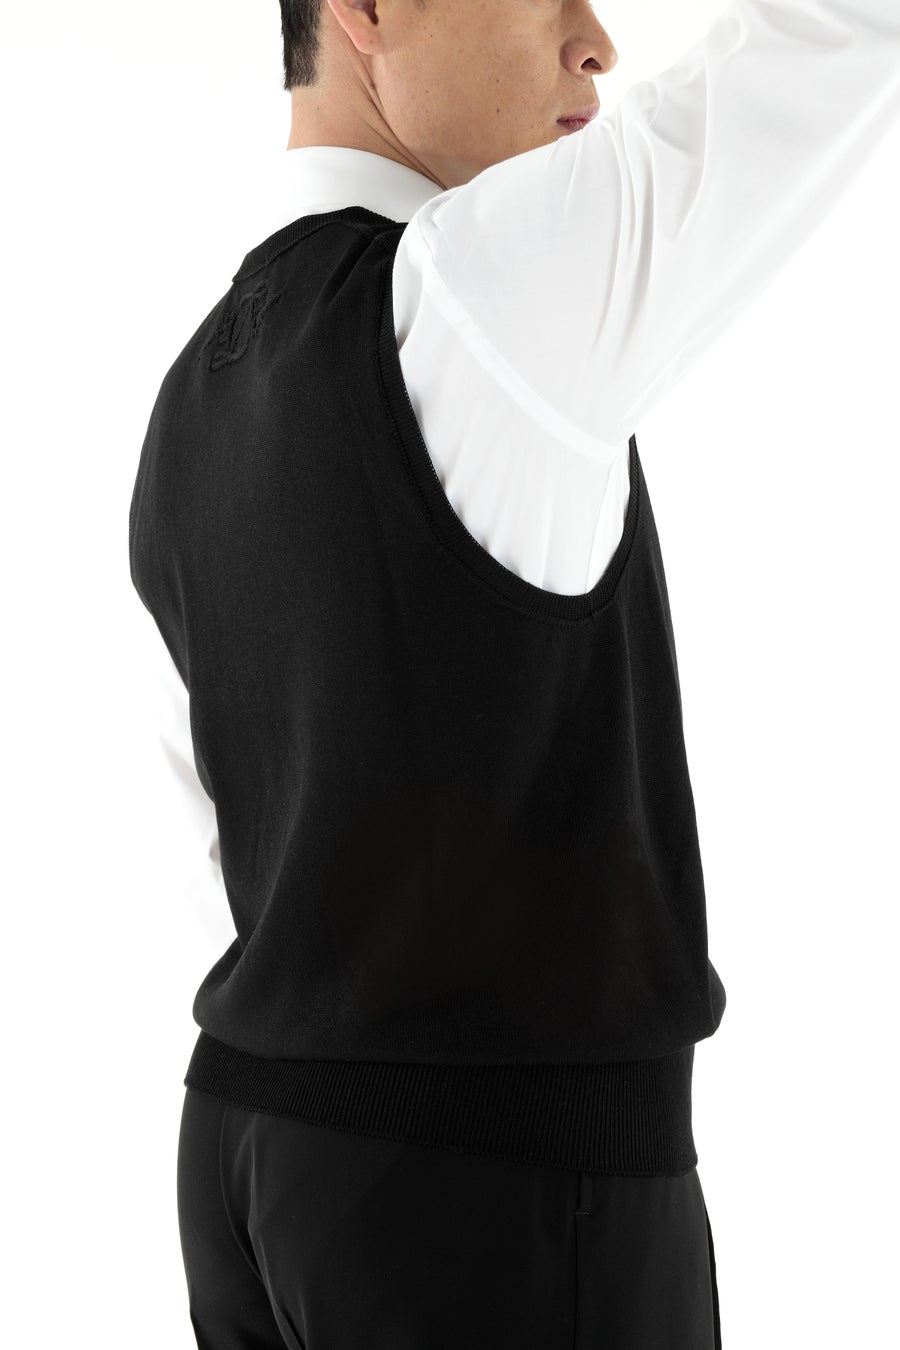 Image of Knitted Vest JNV-1301 Dancewear latin ballroom